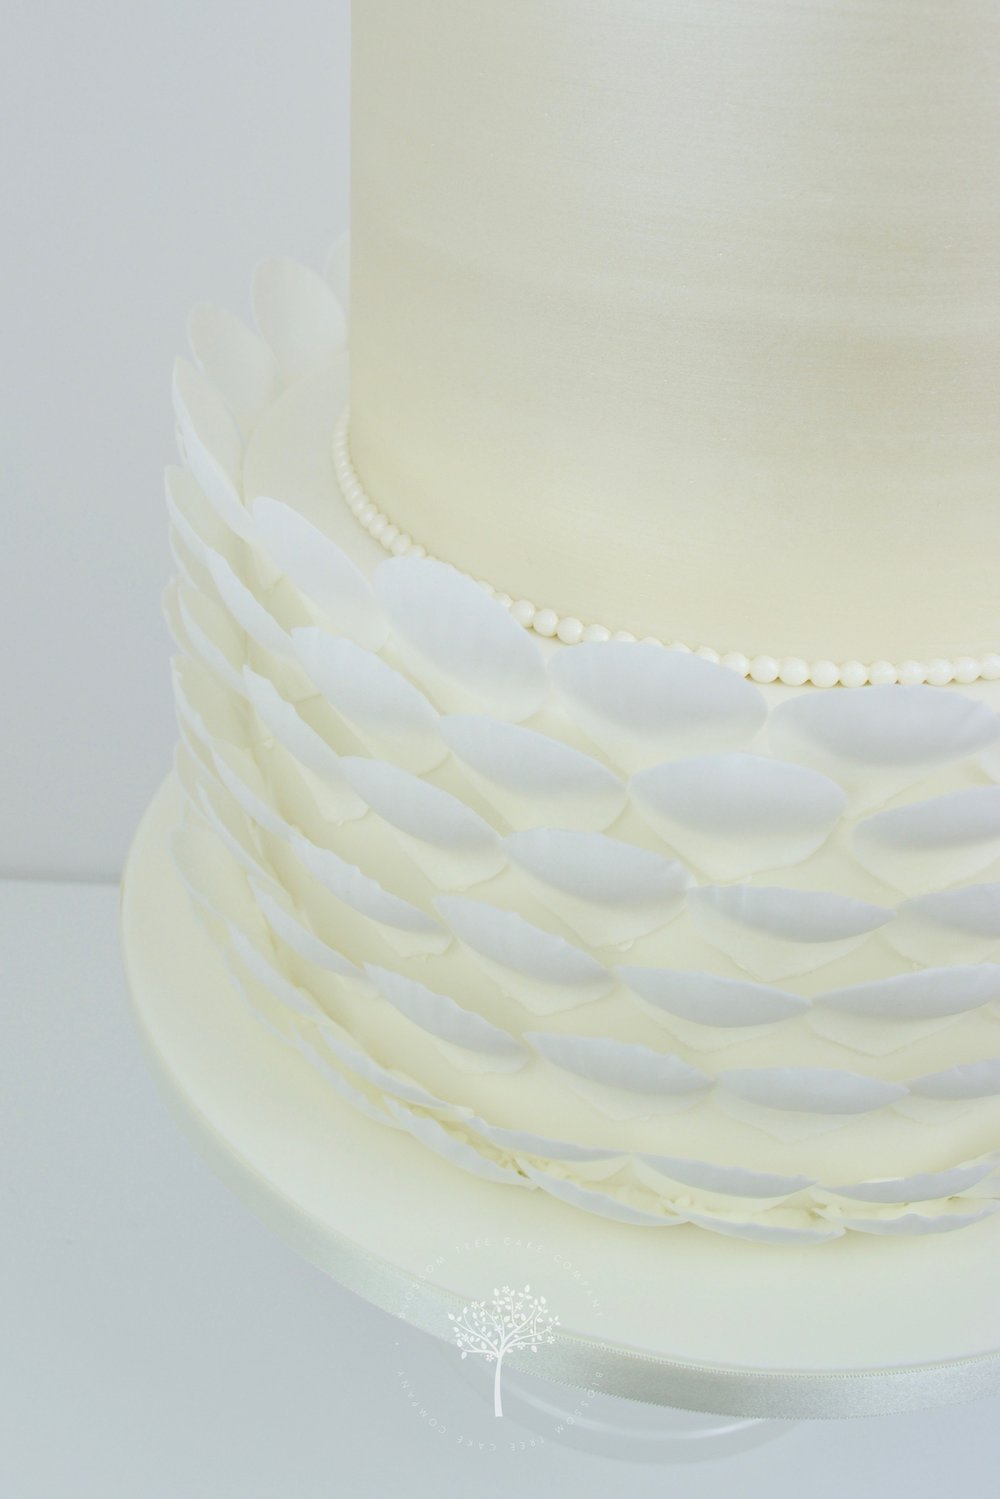 White Roses with Pearls wedding cake by Blossom Tree Cake Company Harrogate North Yorkshire - petal shell ruffles.jpg